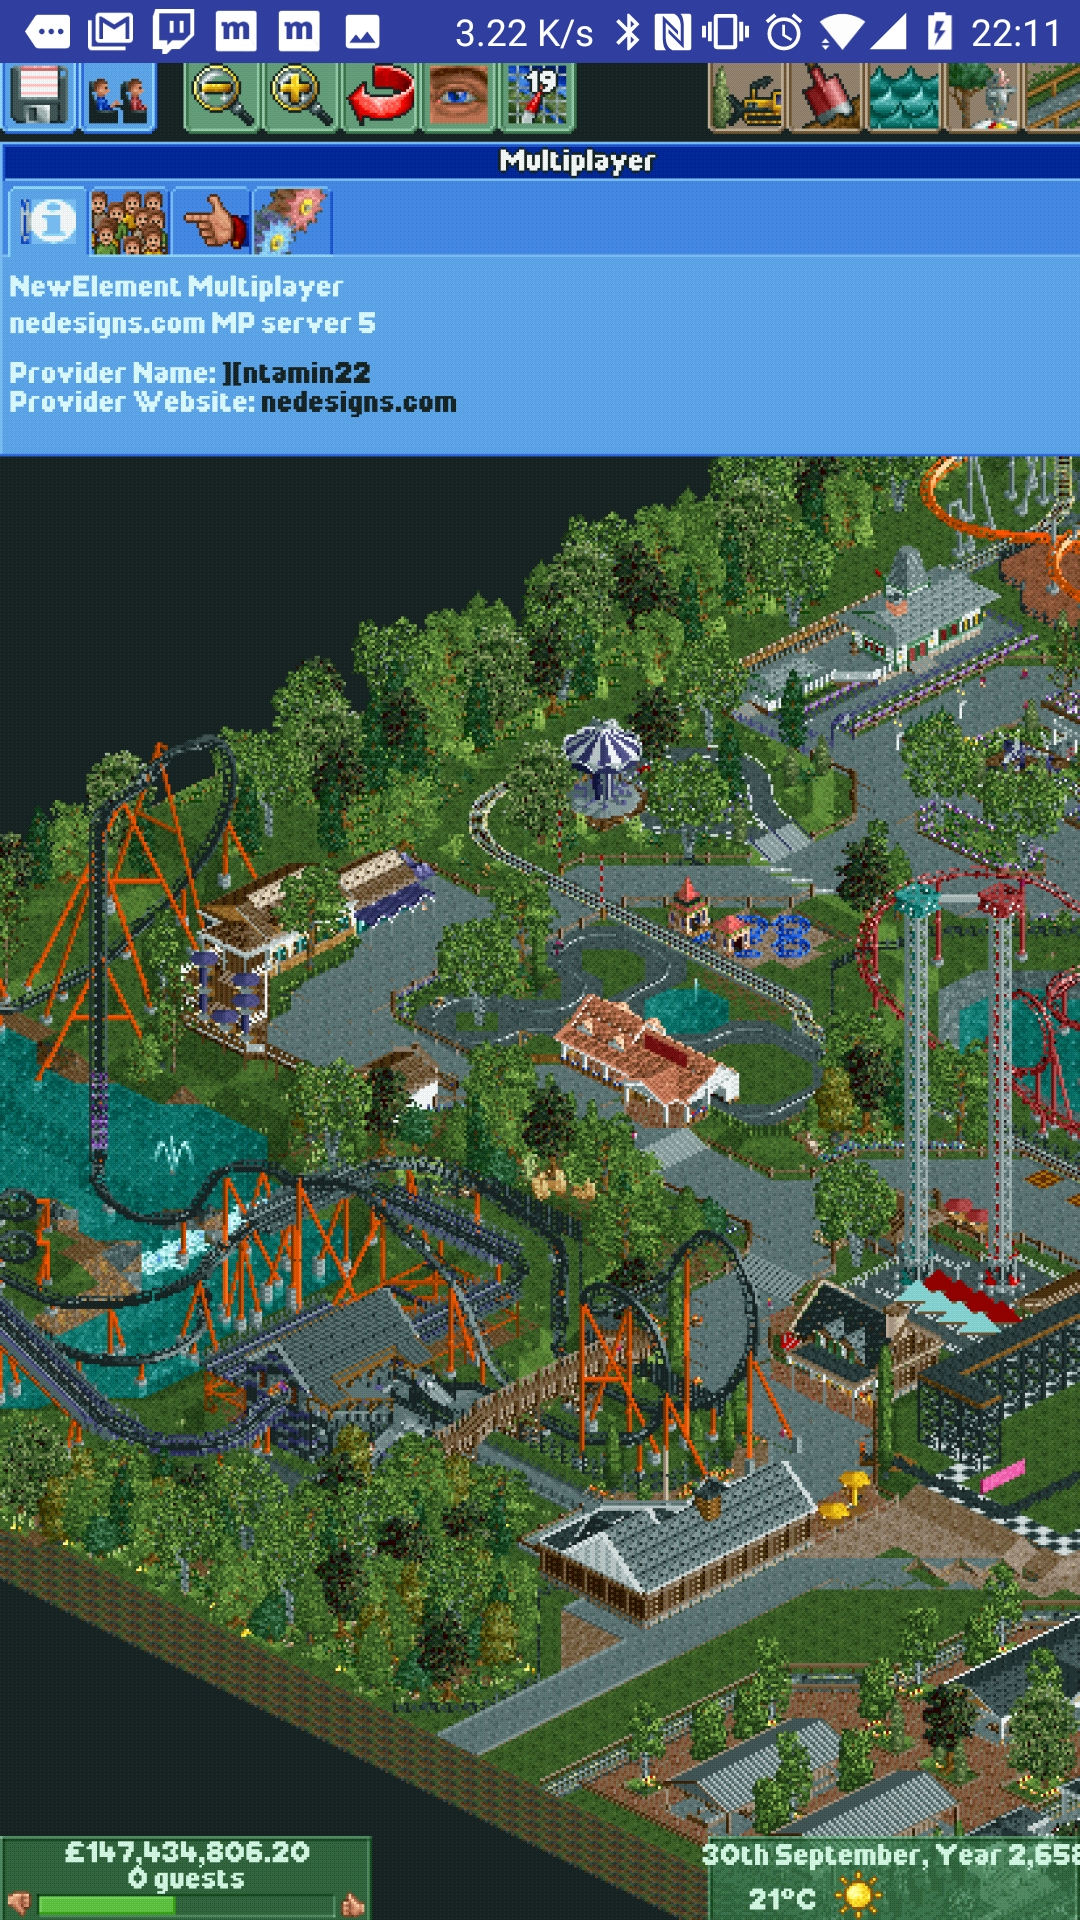 Add boringssl · Issue #8 · OpenRCT2/openrct2-dependencies